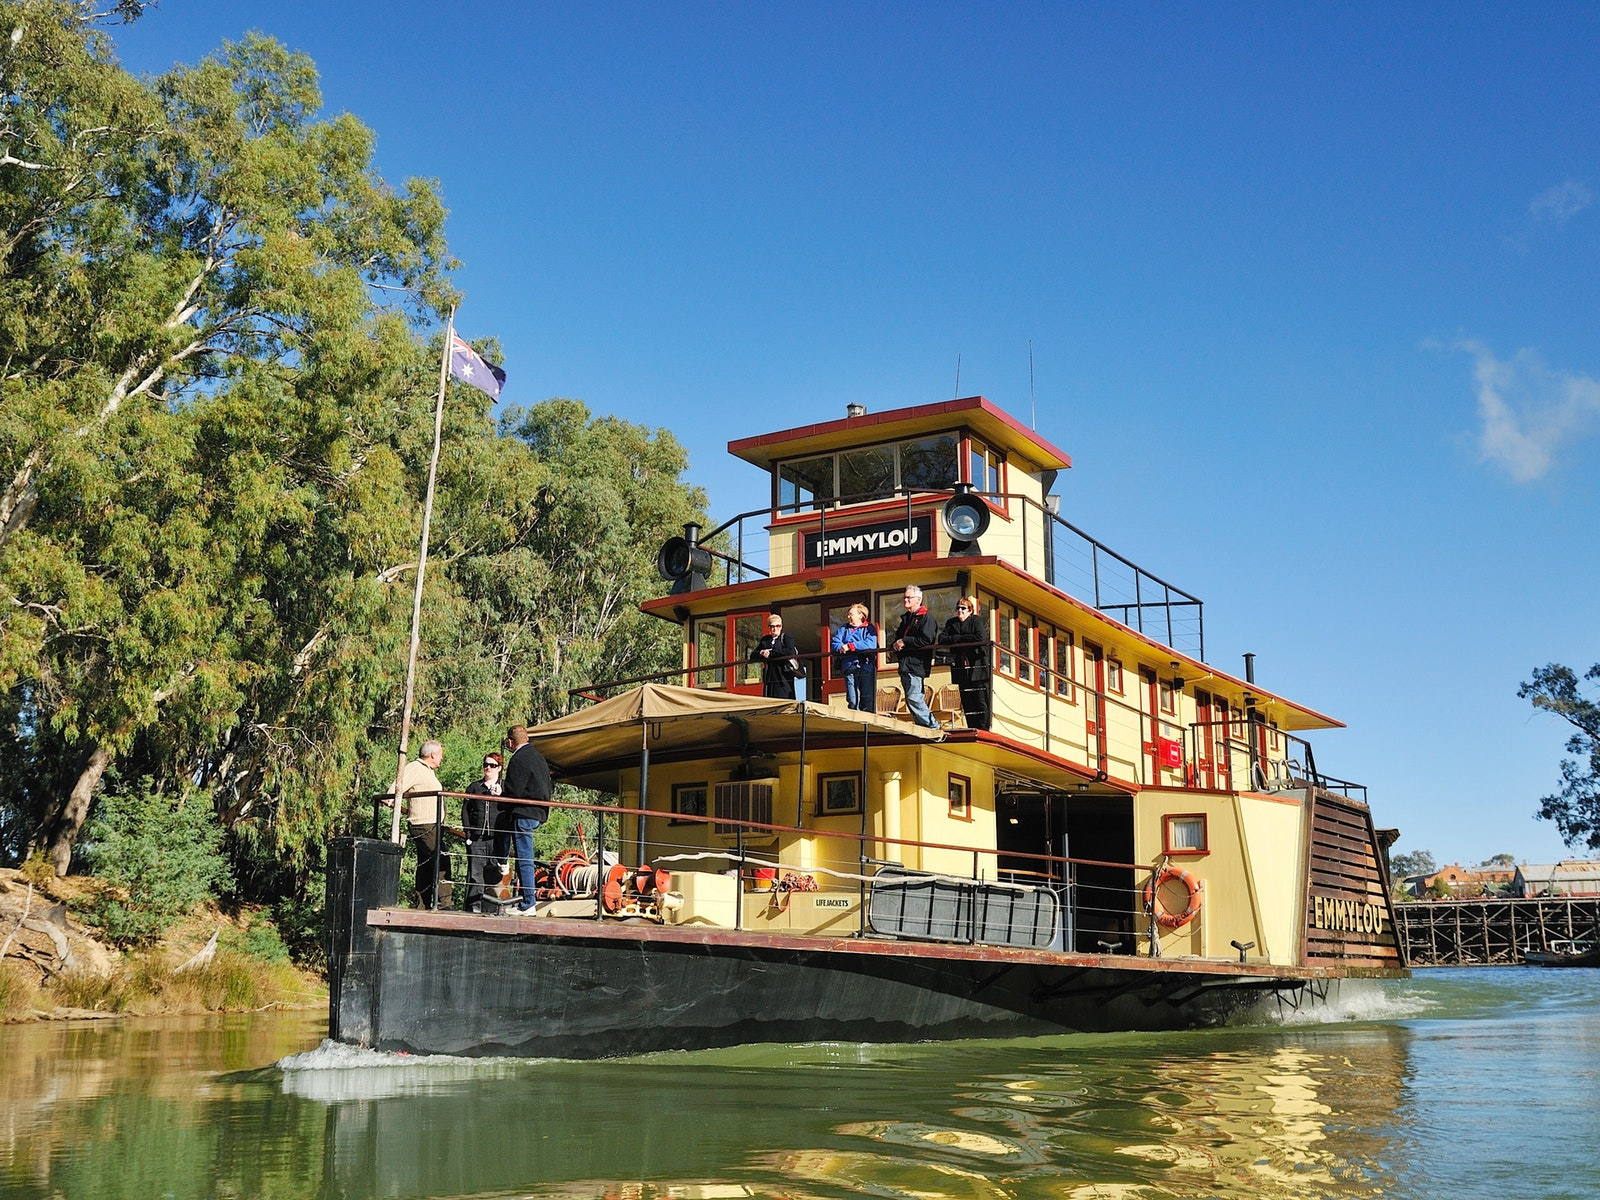 PS Emmylou Steaming from Echuca Wharf